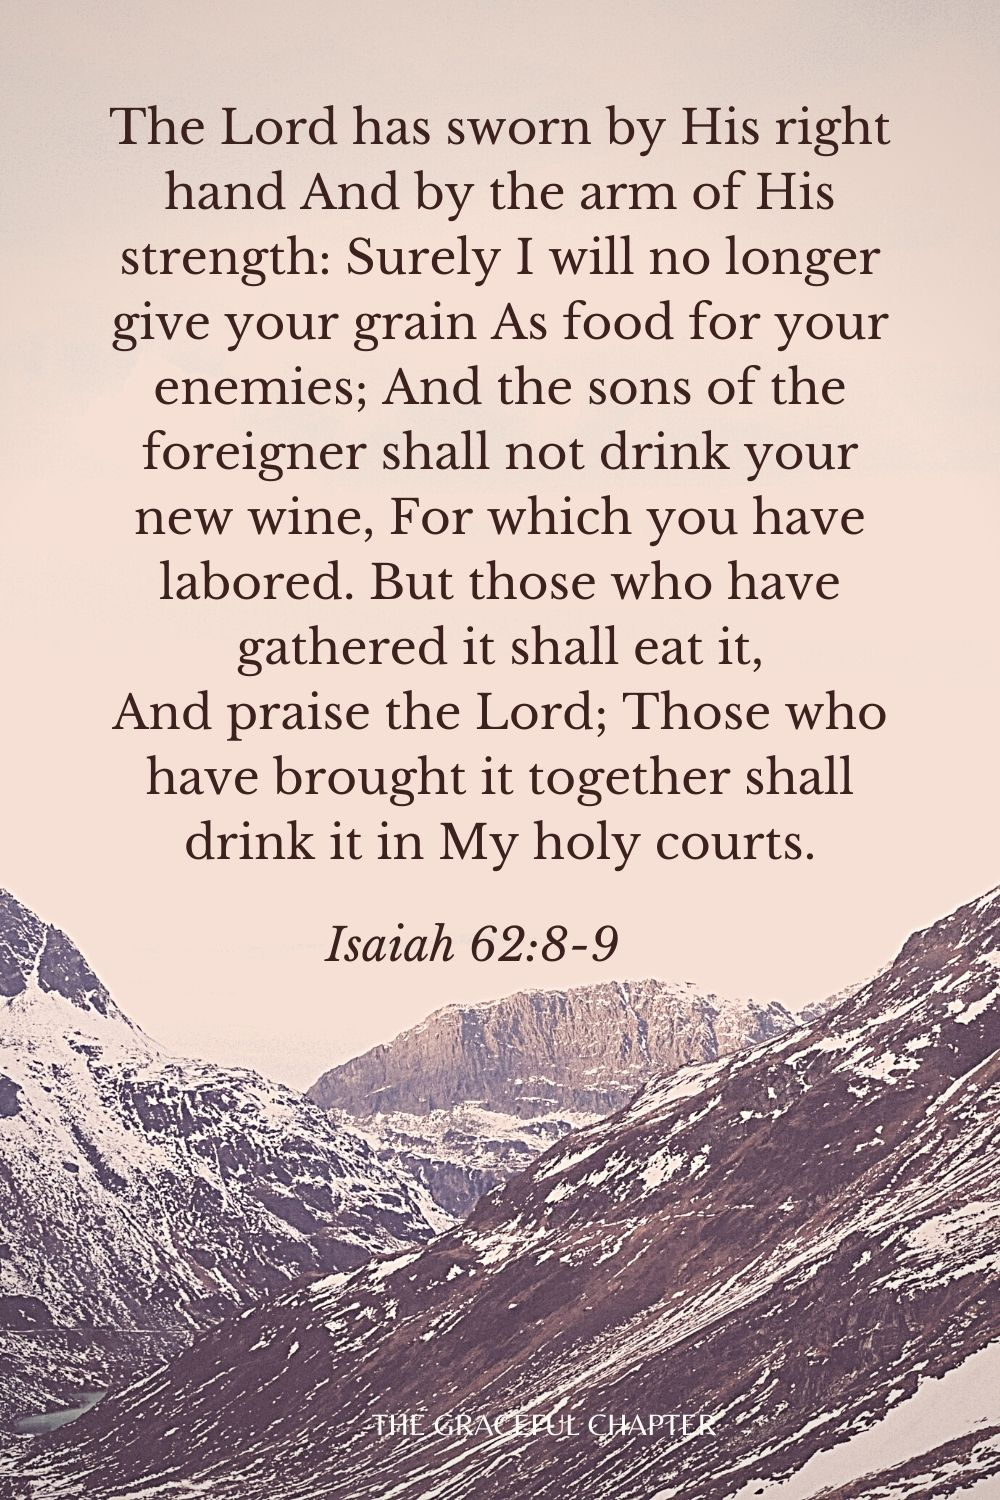 The Lord has sworn by His right hand And by the arm of His strength: Surely I will no longer give your grain As food for your enemies; And the sons of the foreigner shall not drink your new wine, For which you have labored. But those who have gathered it shall eat it, And praise the Lord; Those who have brought it together shall drink it in My holy courts. Isaiah 62:8-9